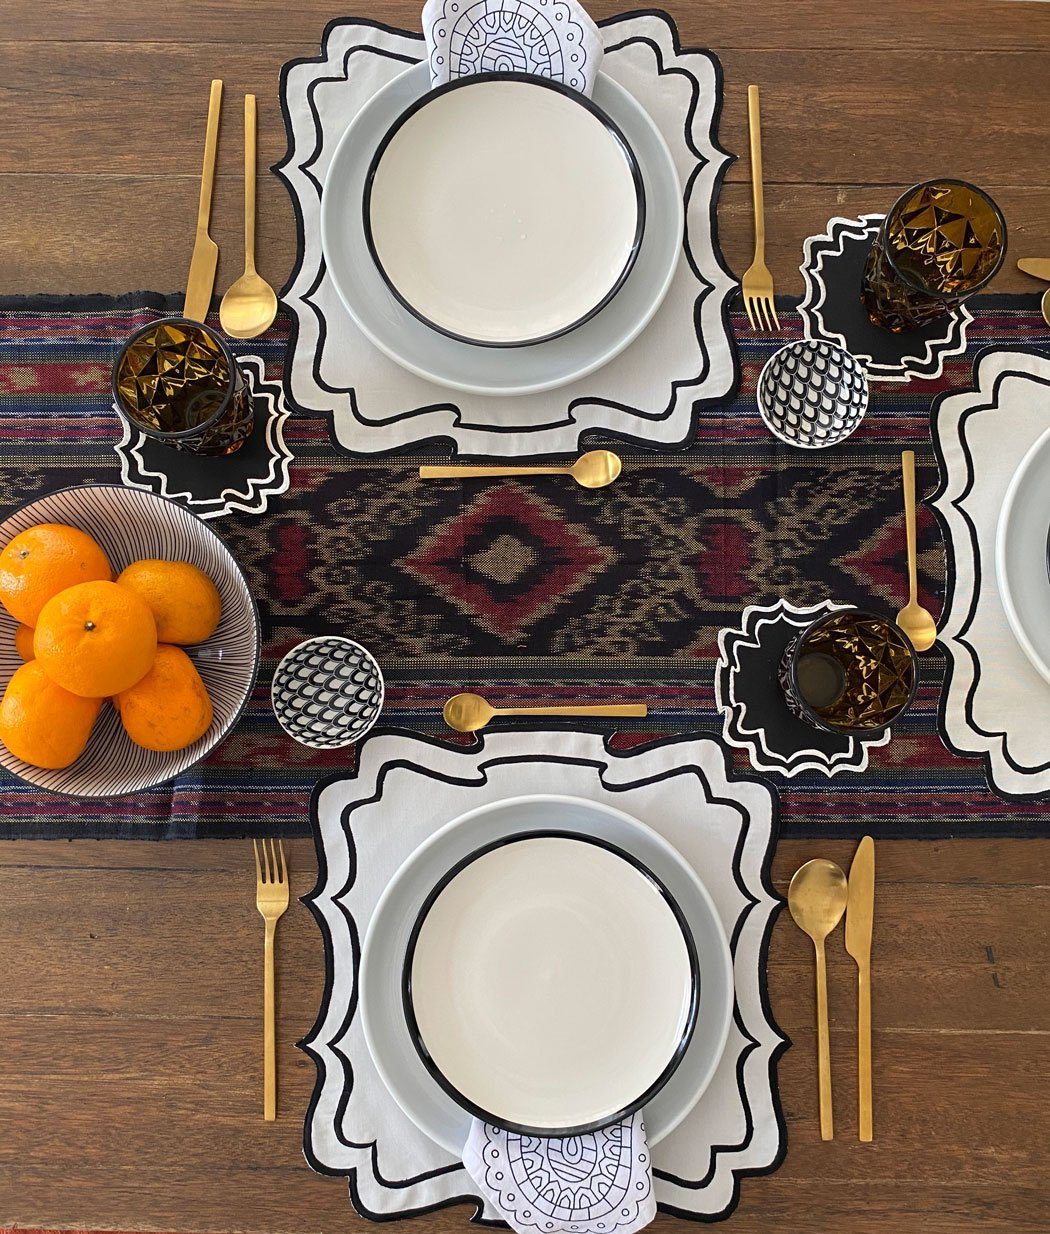 Bergamo Border Placemats and Coasters (Set of 6- Black)